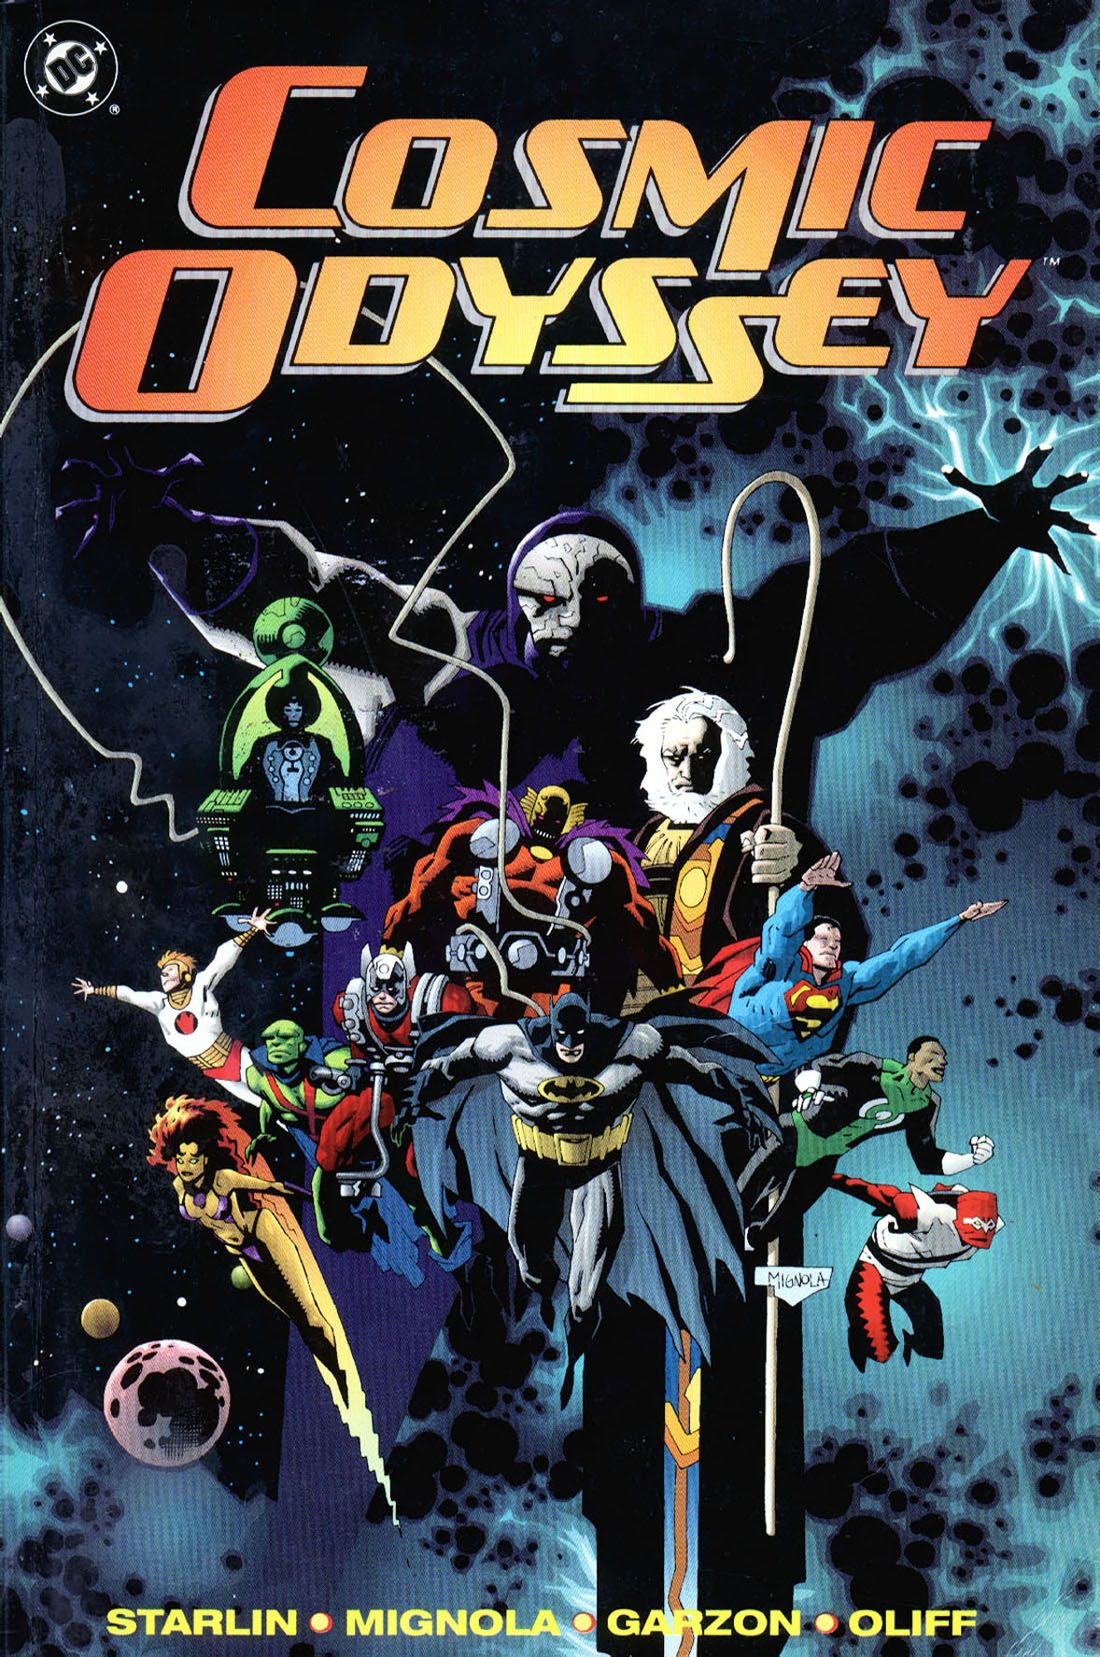 Yellowed Pages: Cosmic Odyssey Is Basically 24 by Way of Infinity Gauntlet